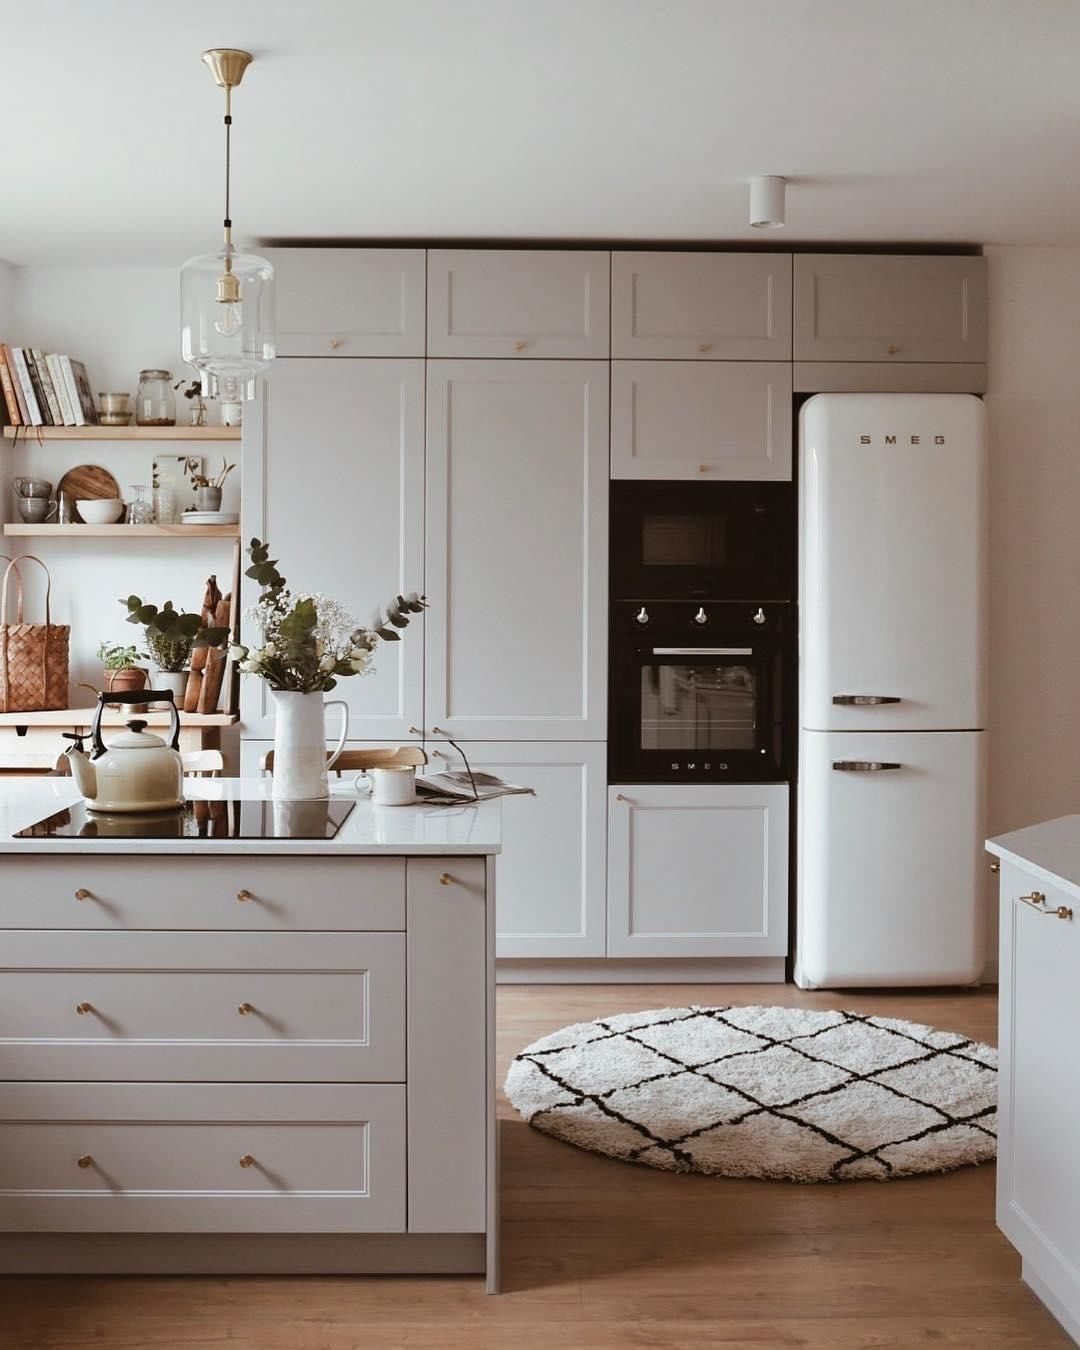 With Marble Details Sleek Black Accents And Coordinating Cabinets These Modern White Kitchen Applianc In 2020 White Modern Kitchen Kitchen Style Kitchen Inspirations